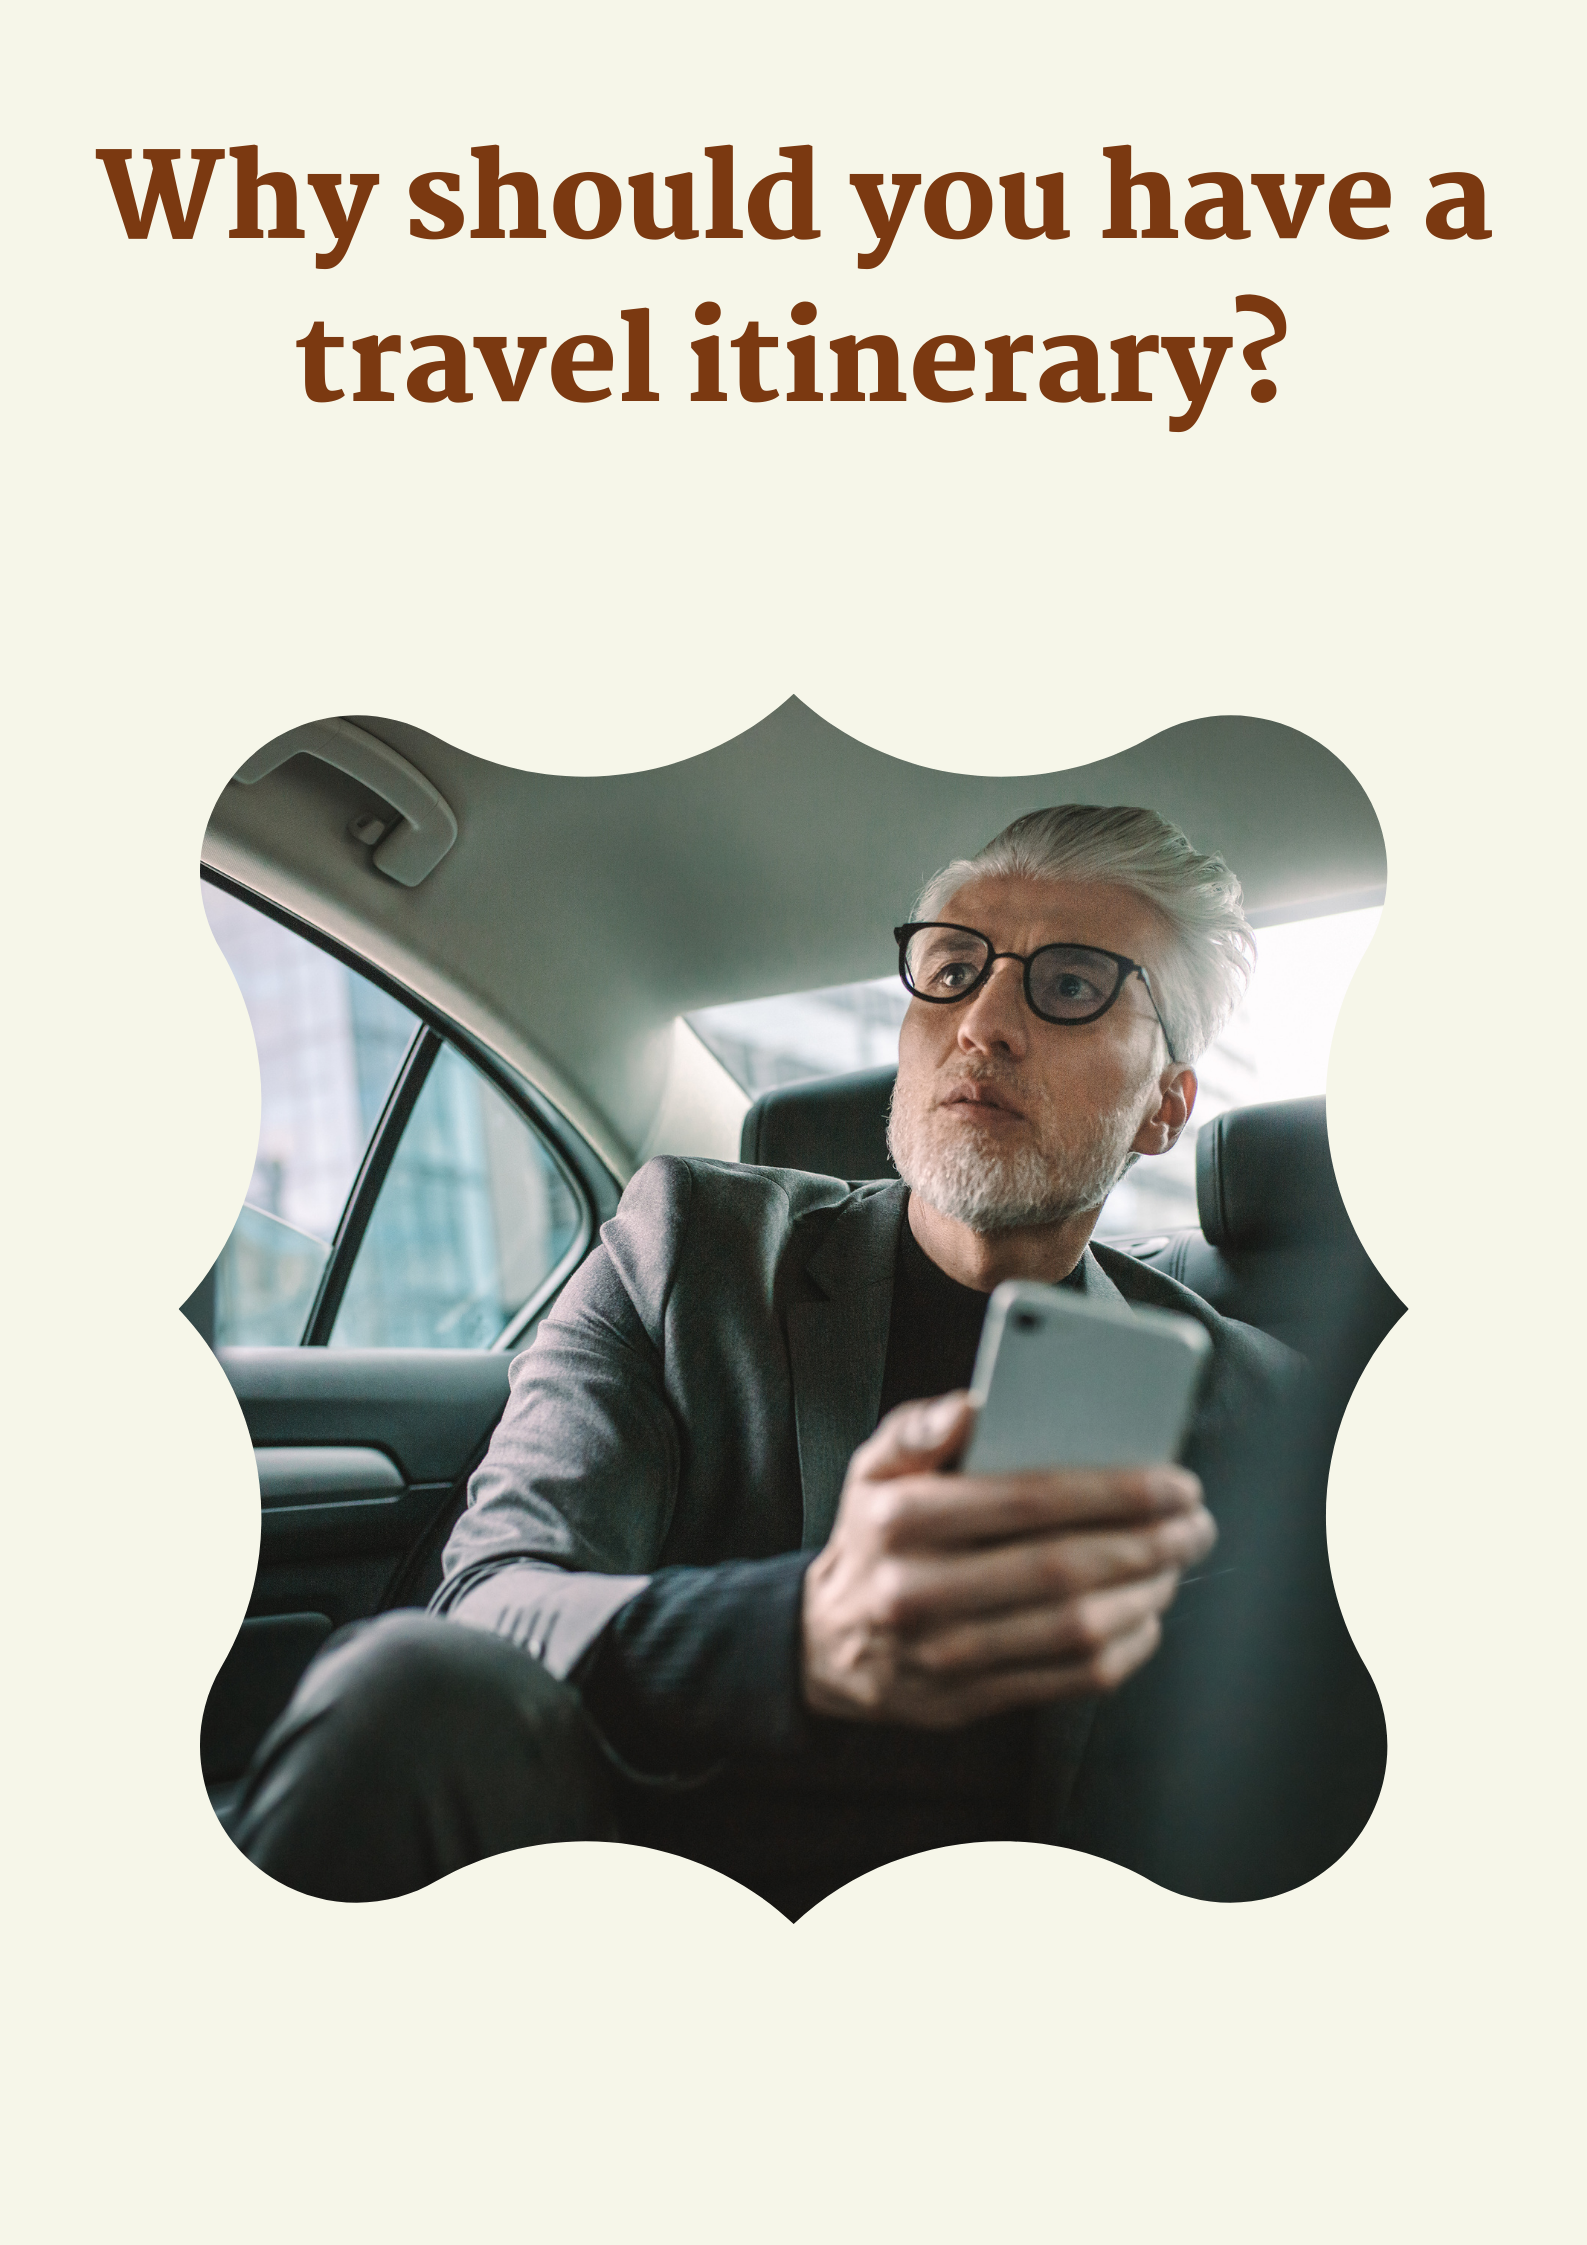 Why-should-you-have-a-travel-itinerary